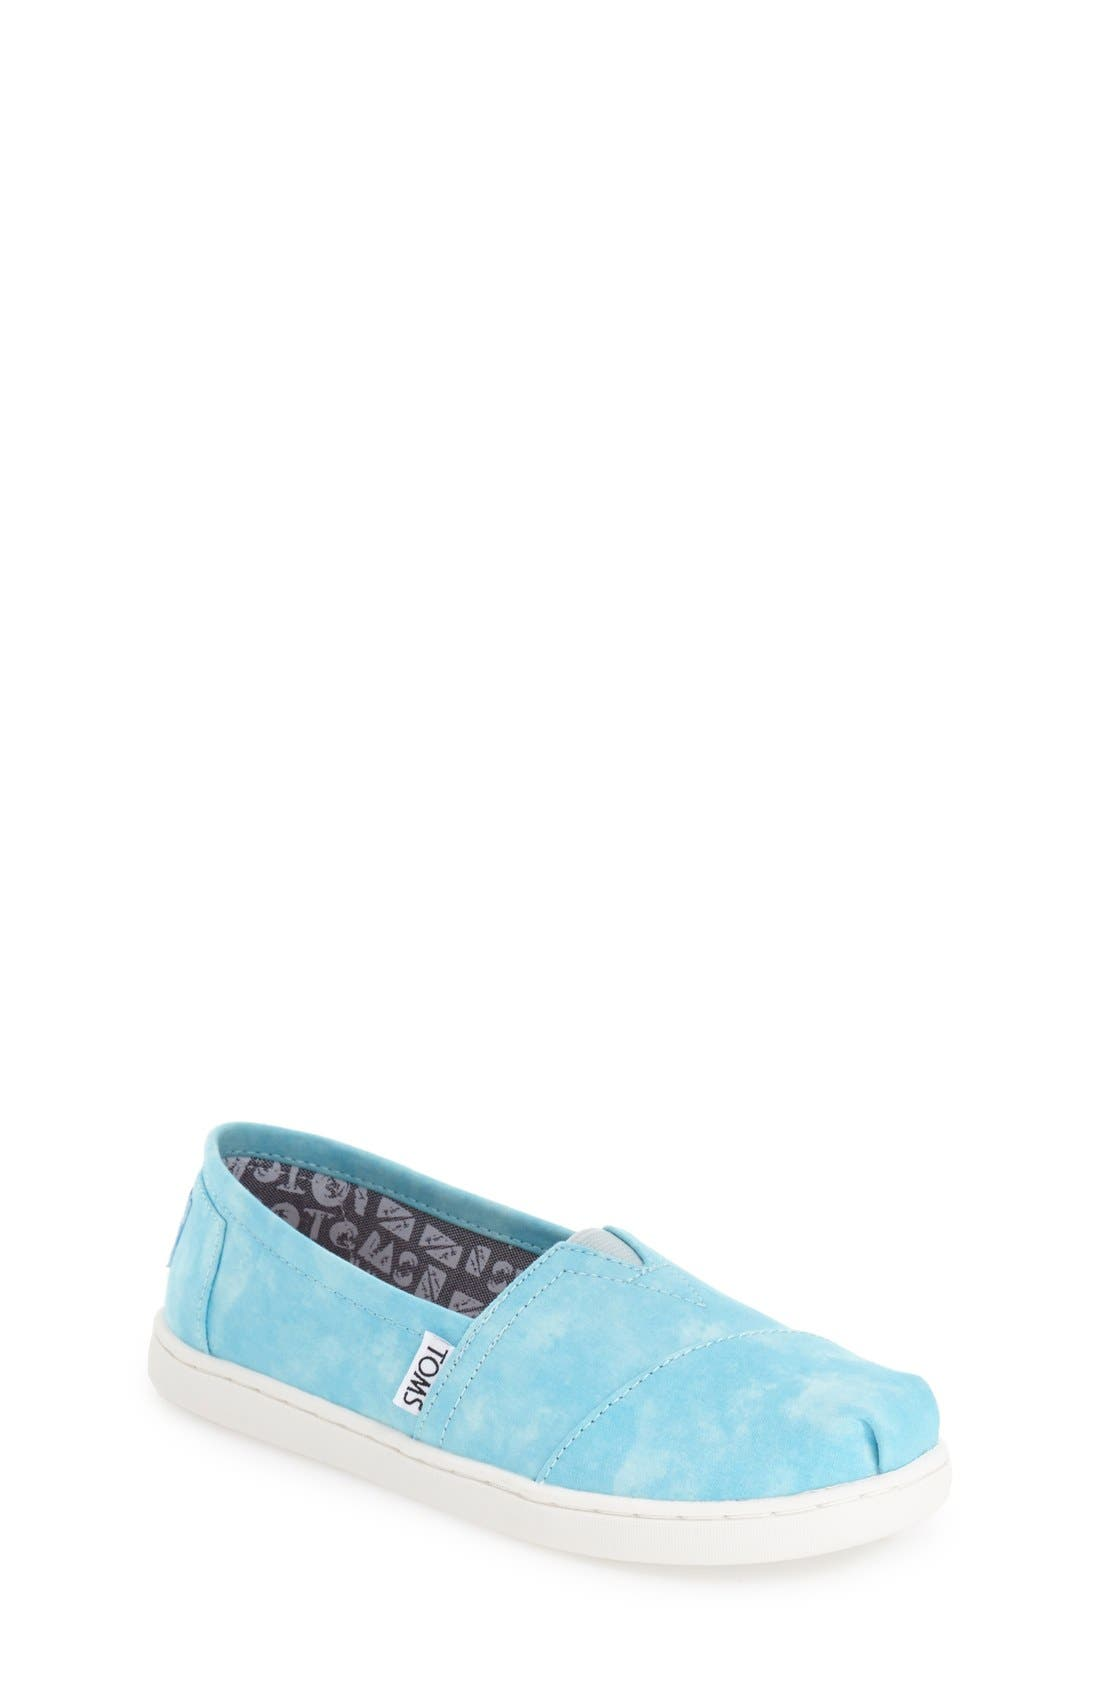 TOMS 'Classic - Tie Dye' Slip-On (Toddler, Little Kid & Big Kid)